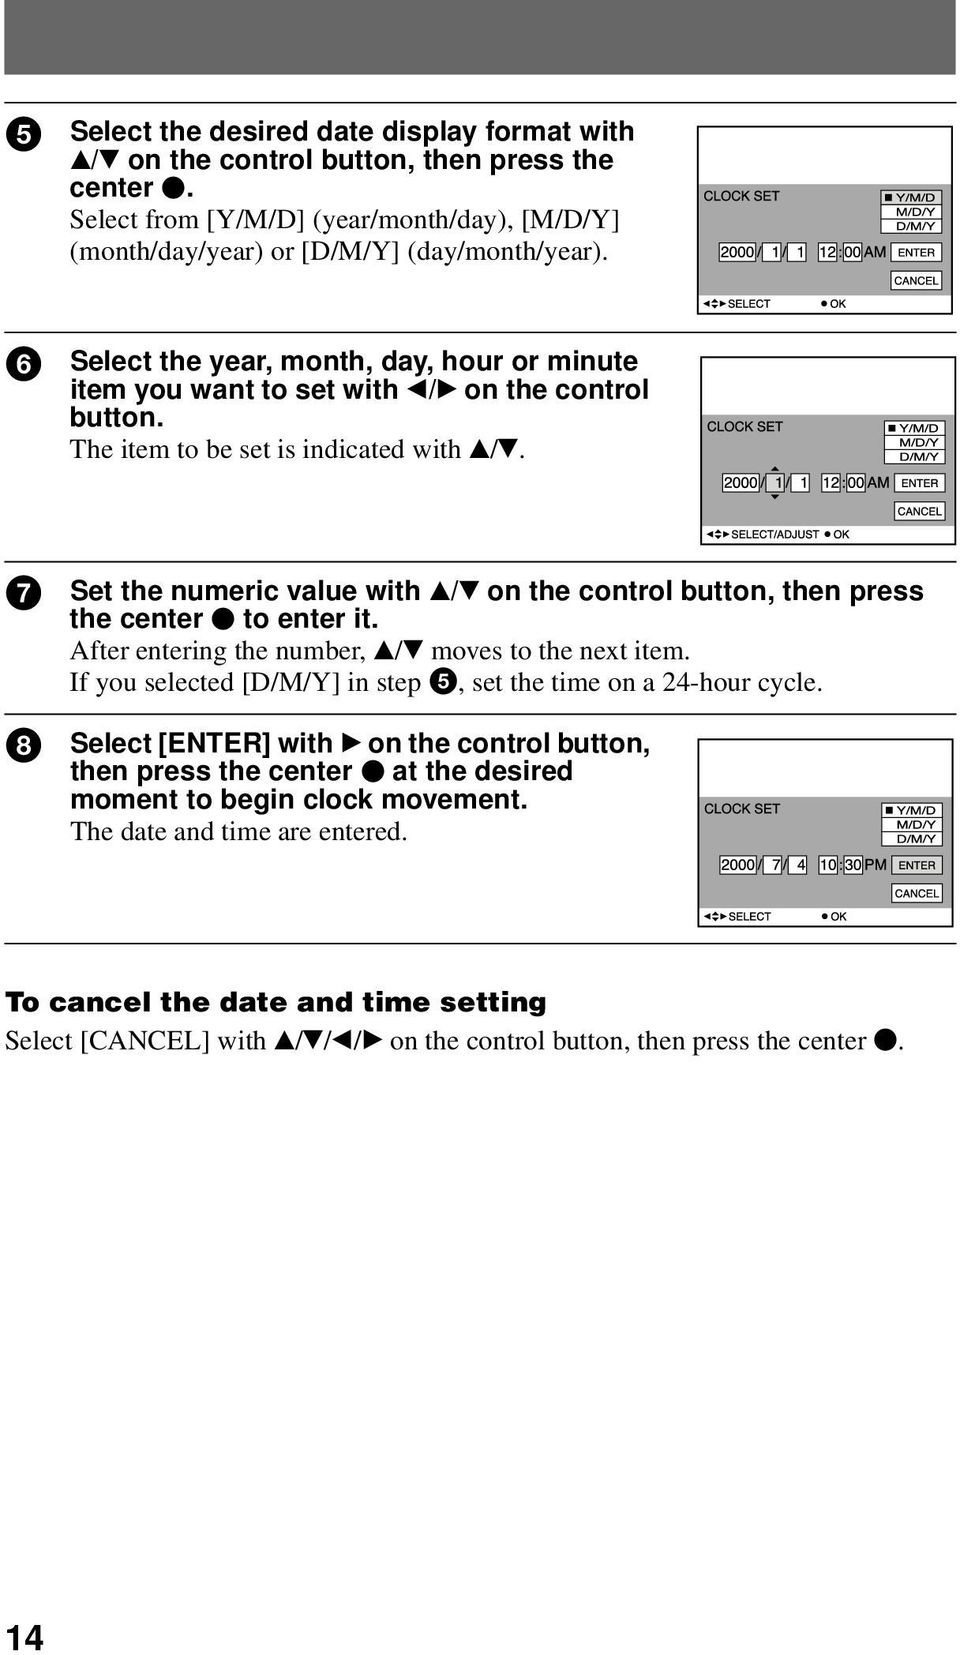 7 Set the numeric value with v/v on the control button, then press the center z to enter it. After entering the number, v/v moves to the next item.